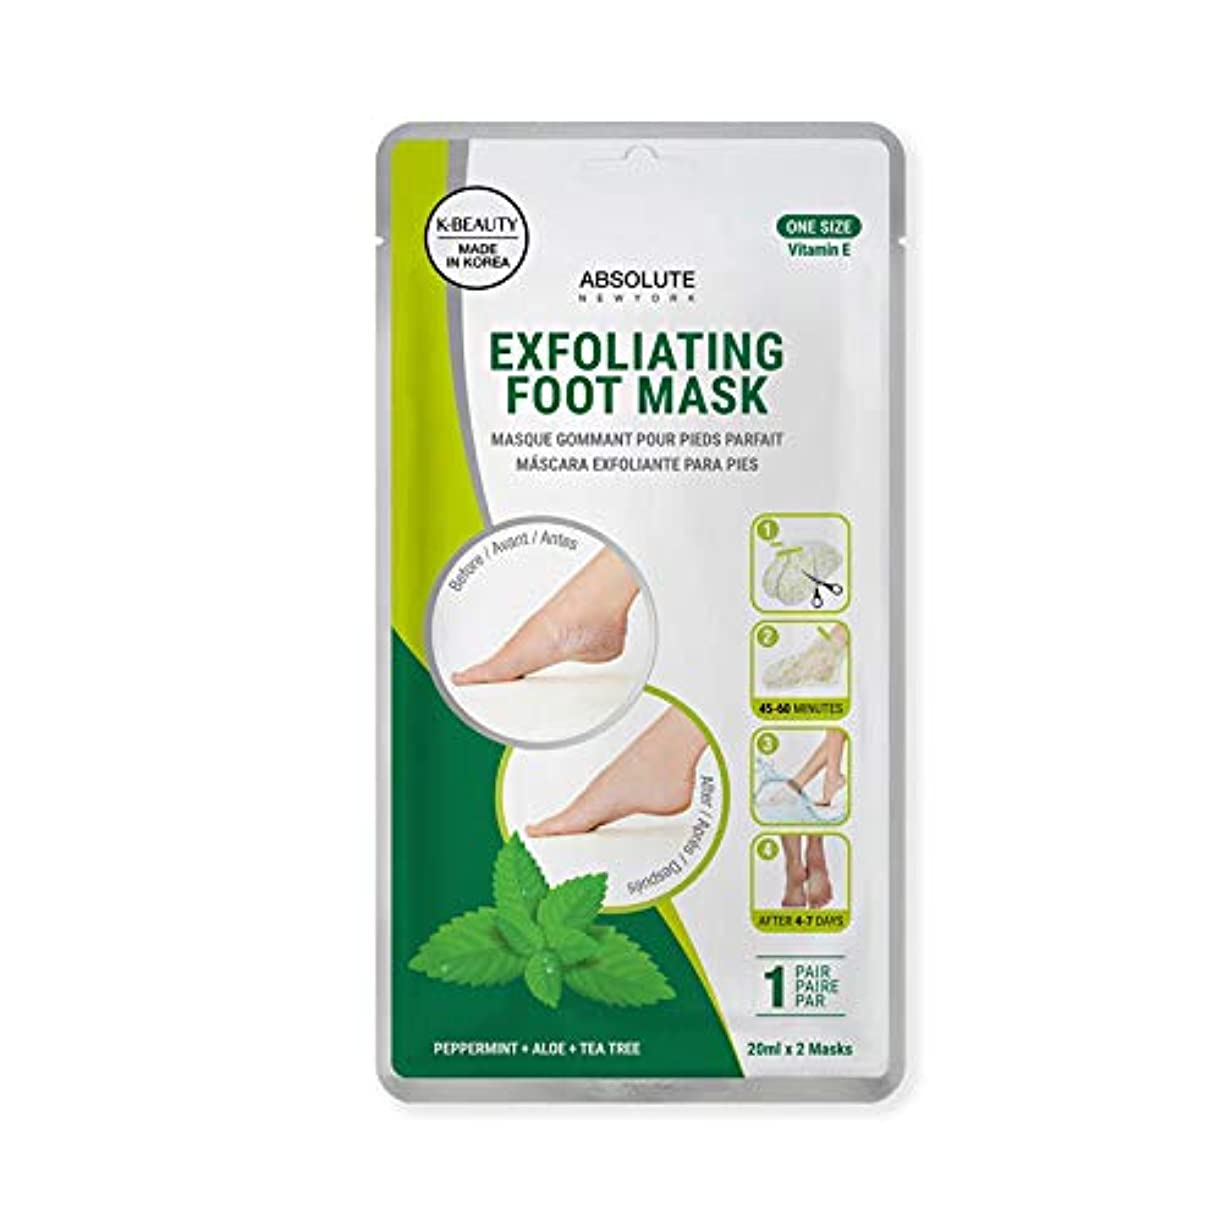 カプラー暗唱する彼女自身ABSOLUTE Exfoliating Foot Mask - Peppermint + Aloe + Tea Tree (並行輸入品)